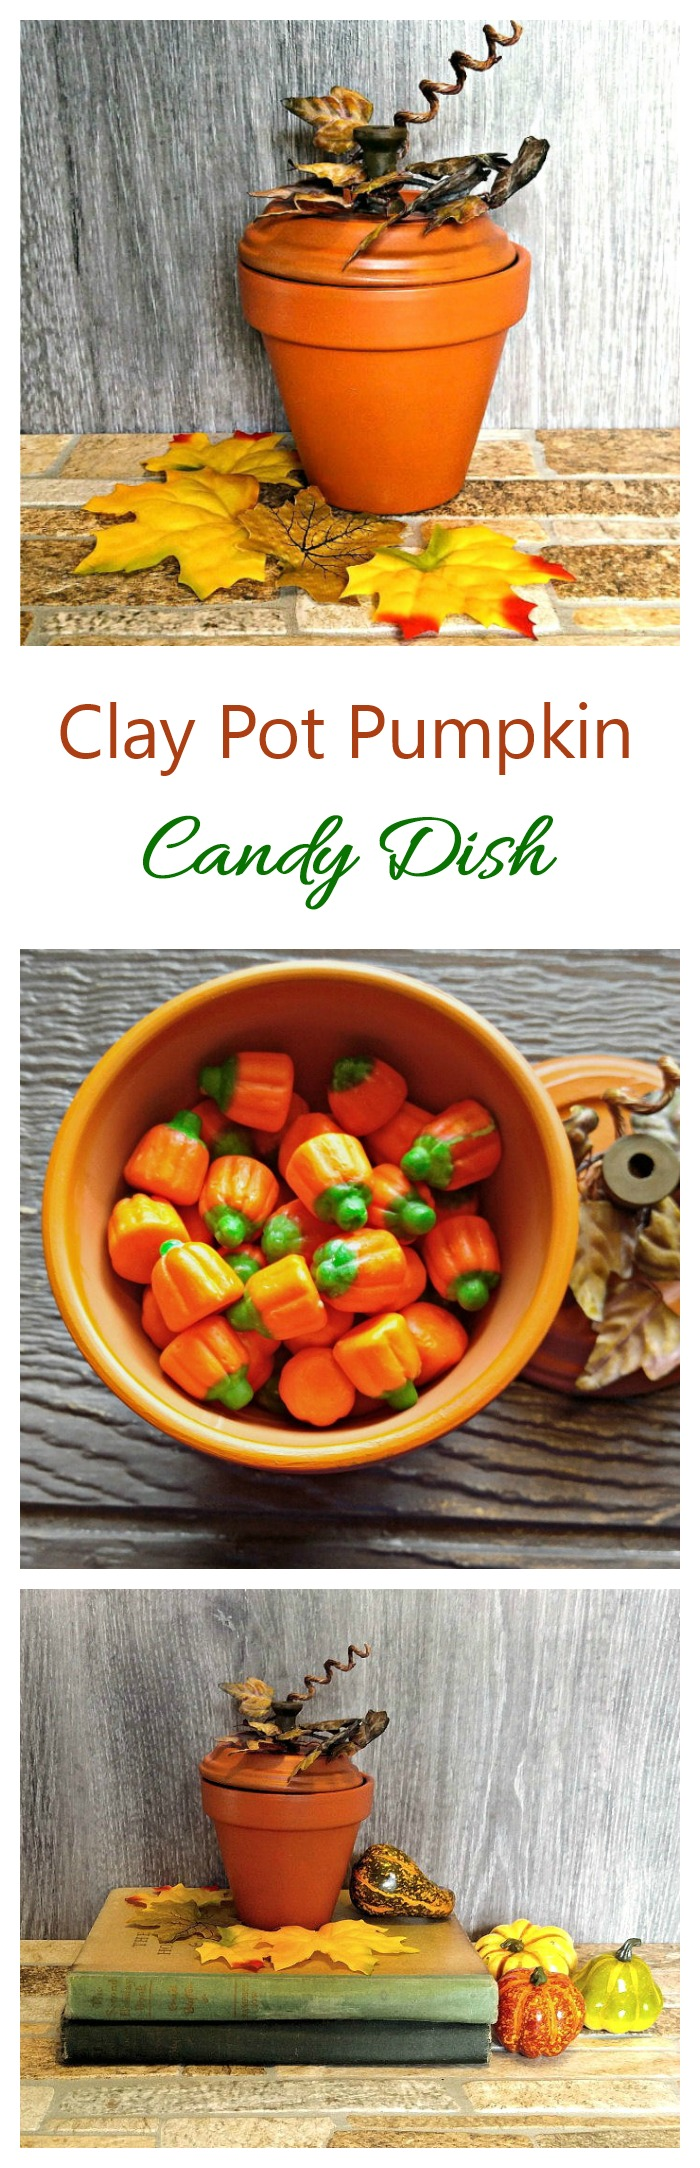 This clay pot pumpkin is super easy to make and has a hidden candy dish surprise under the lid. #halloweencandy #diycandydish